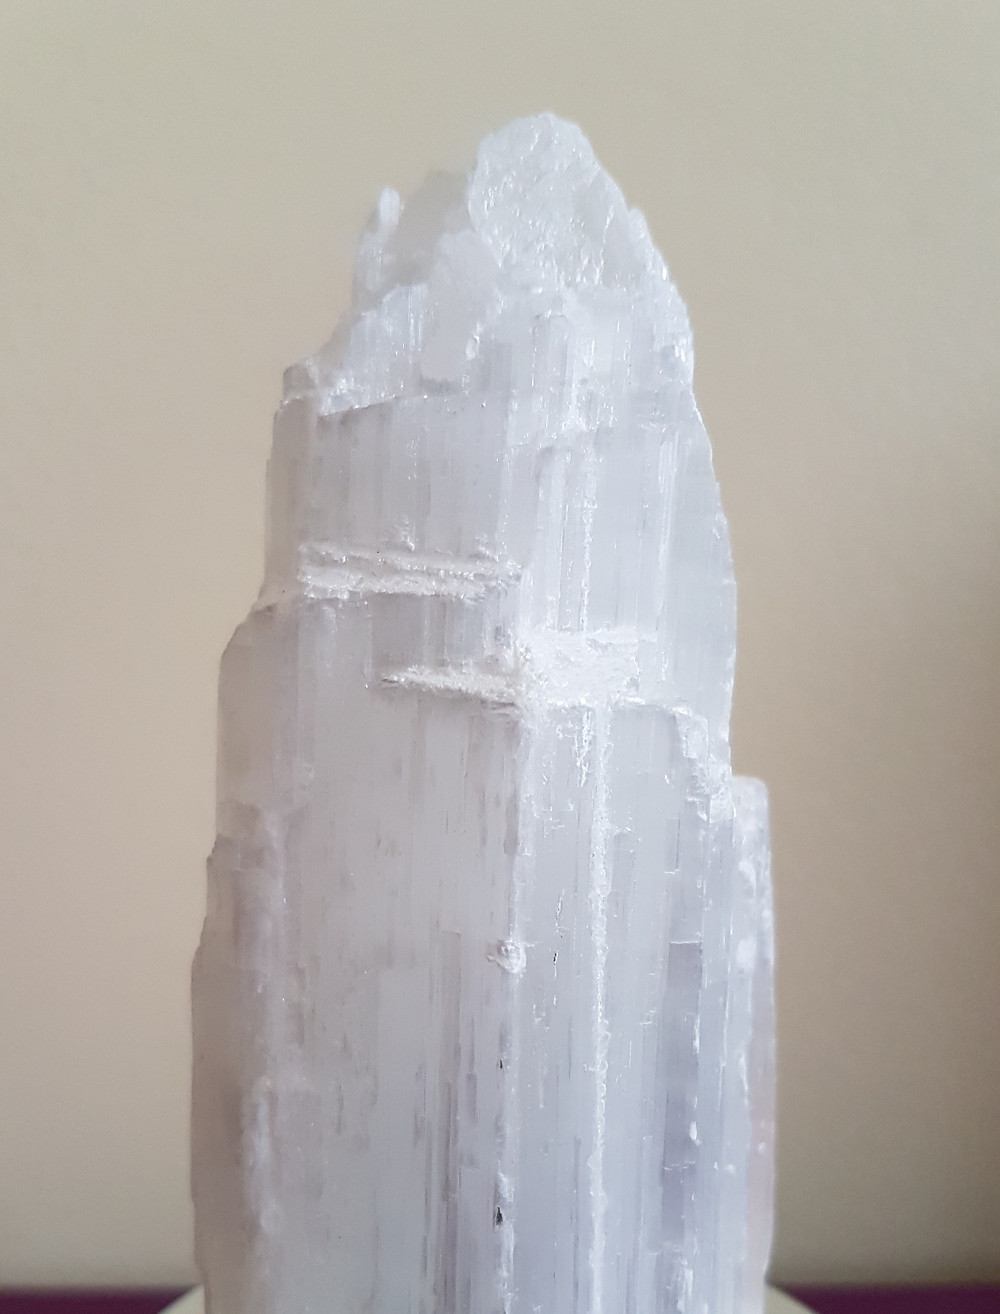 Upright striated Selenite crystal